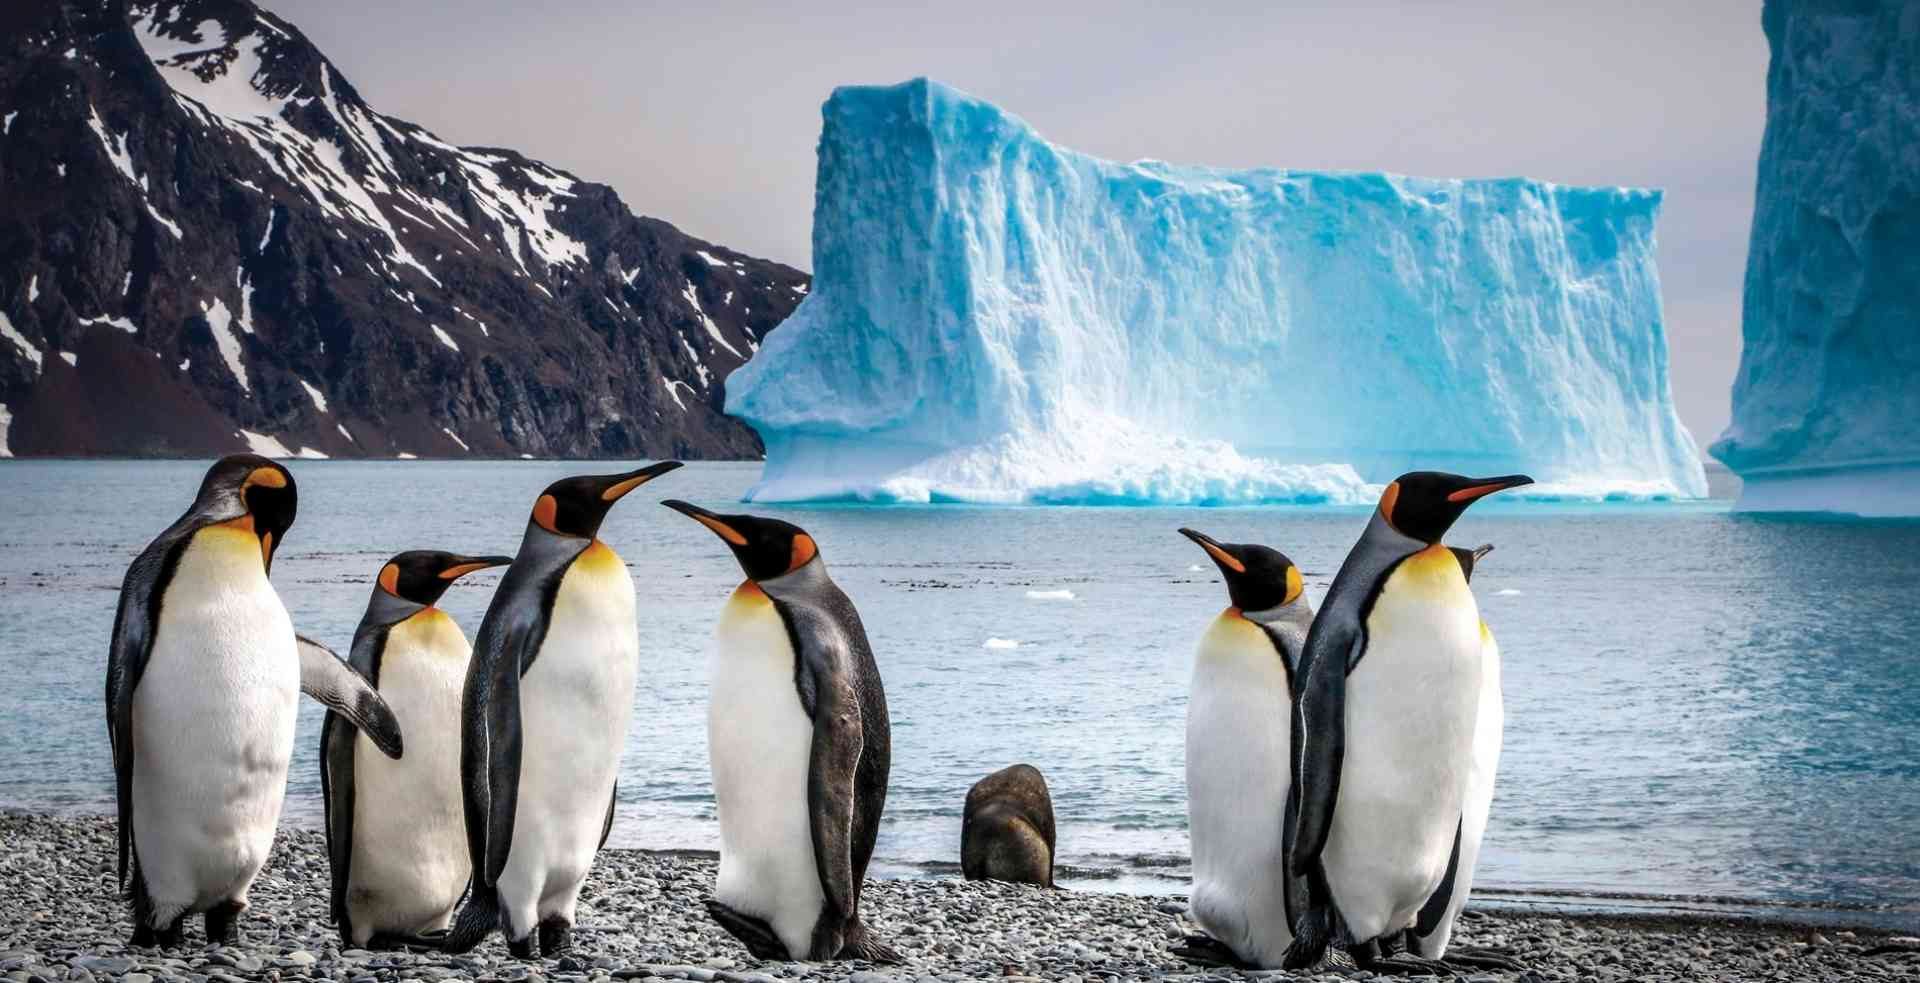 King penguins, Antarctica by Aurora Expeditions